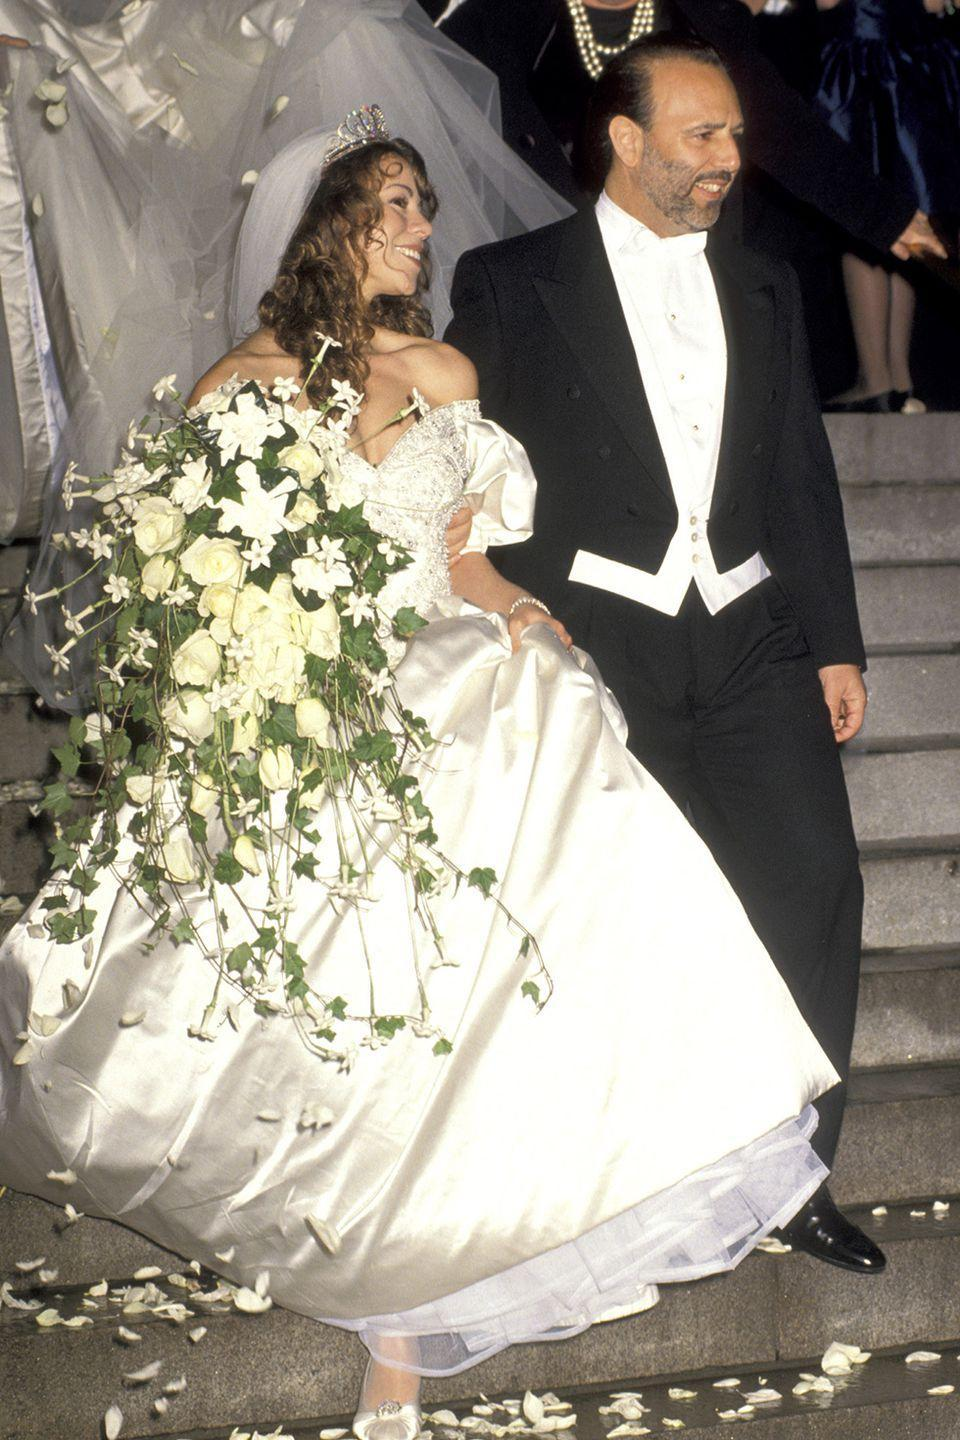 <p>It's no surprise that the diva went all out for her first wedding to Tommy Mottola, including having 50 flower girls. Designed by Vera Wang, her gown had puffy, off-the-shoulder sleeves and a 27-foot train, completed with a tiara and 10-foot veil.</p>